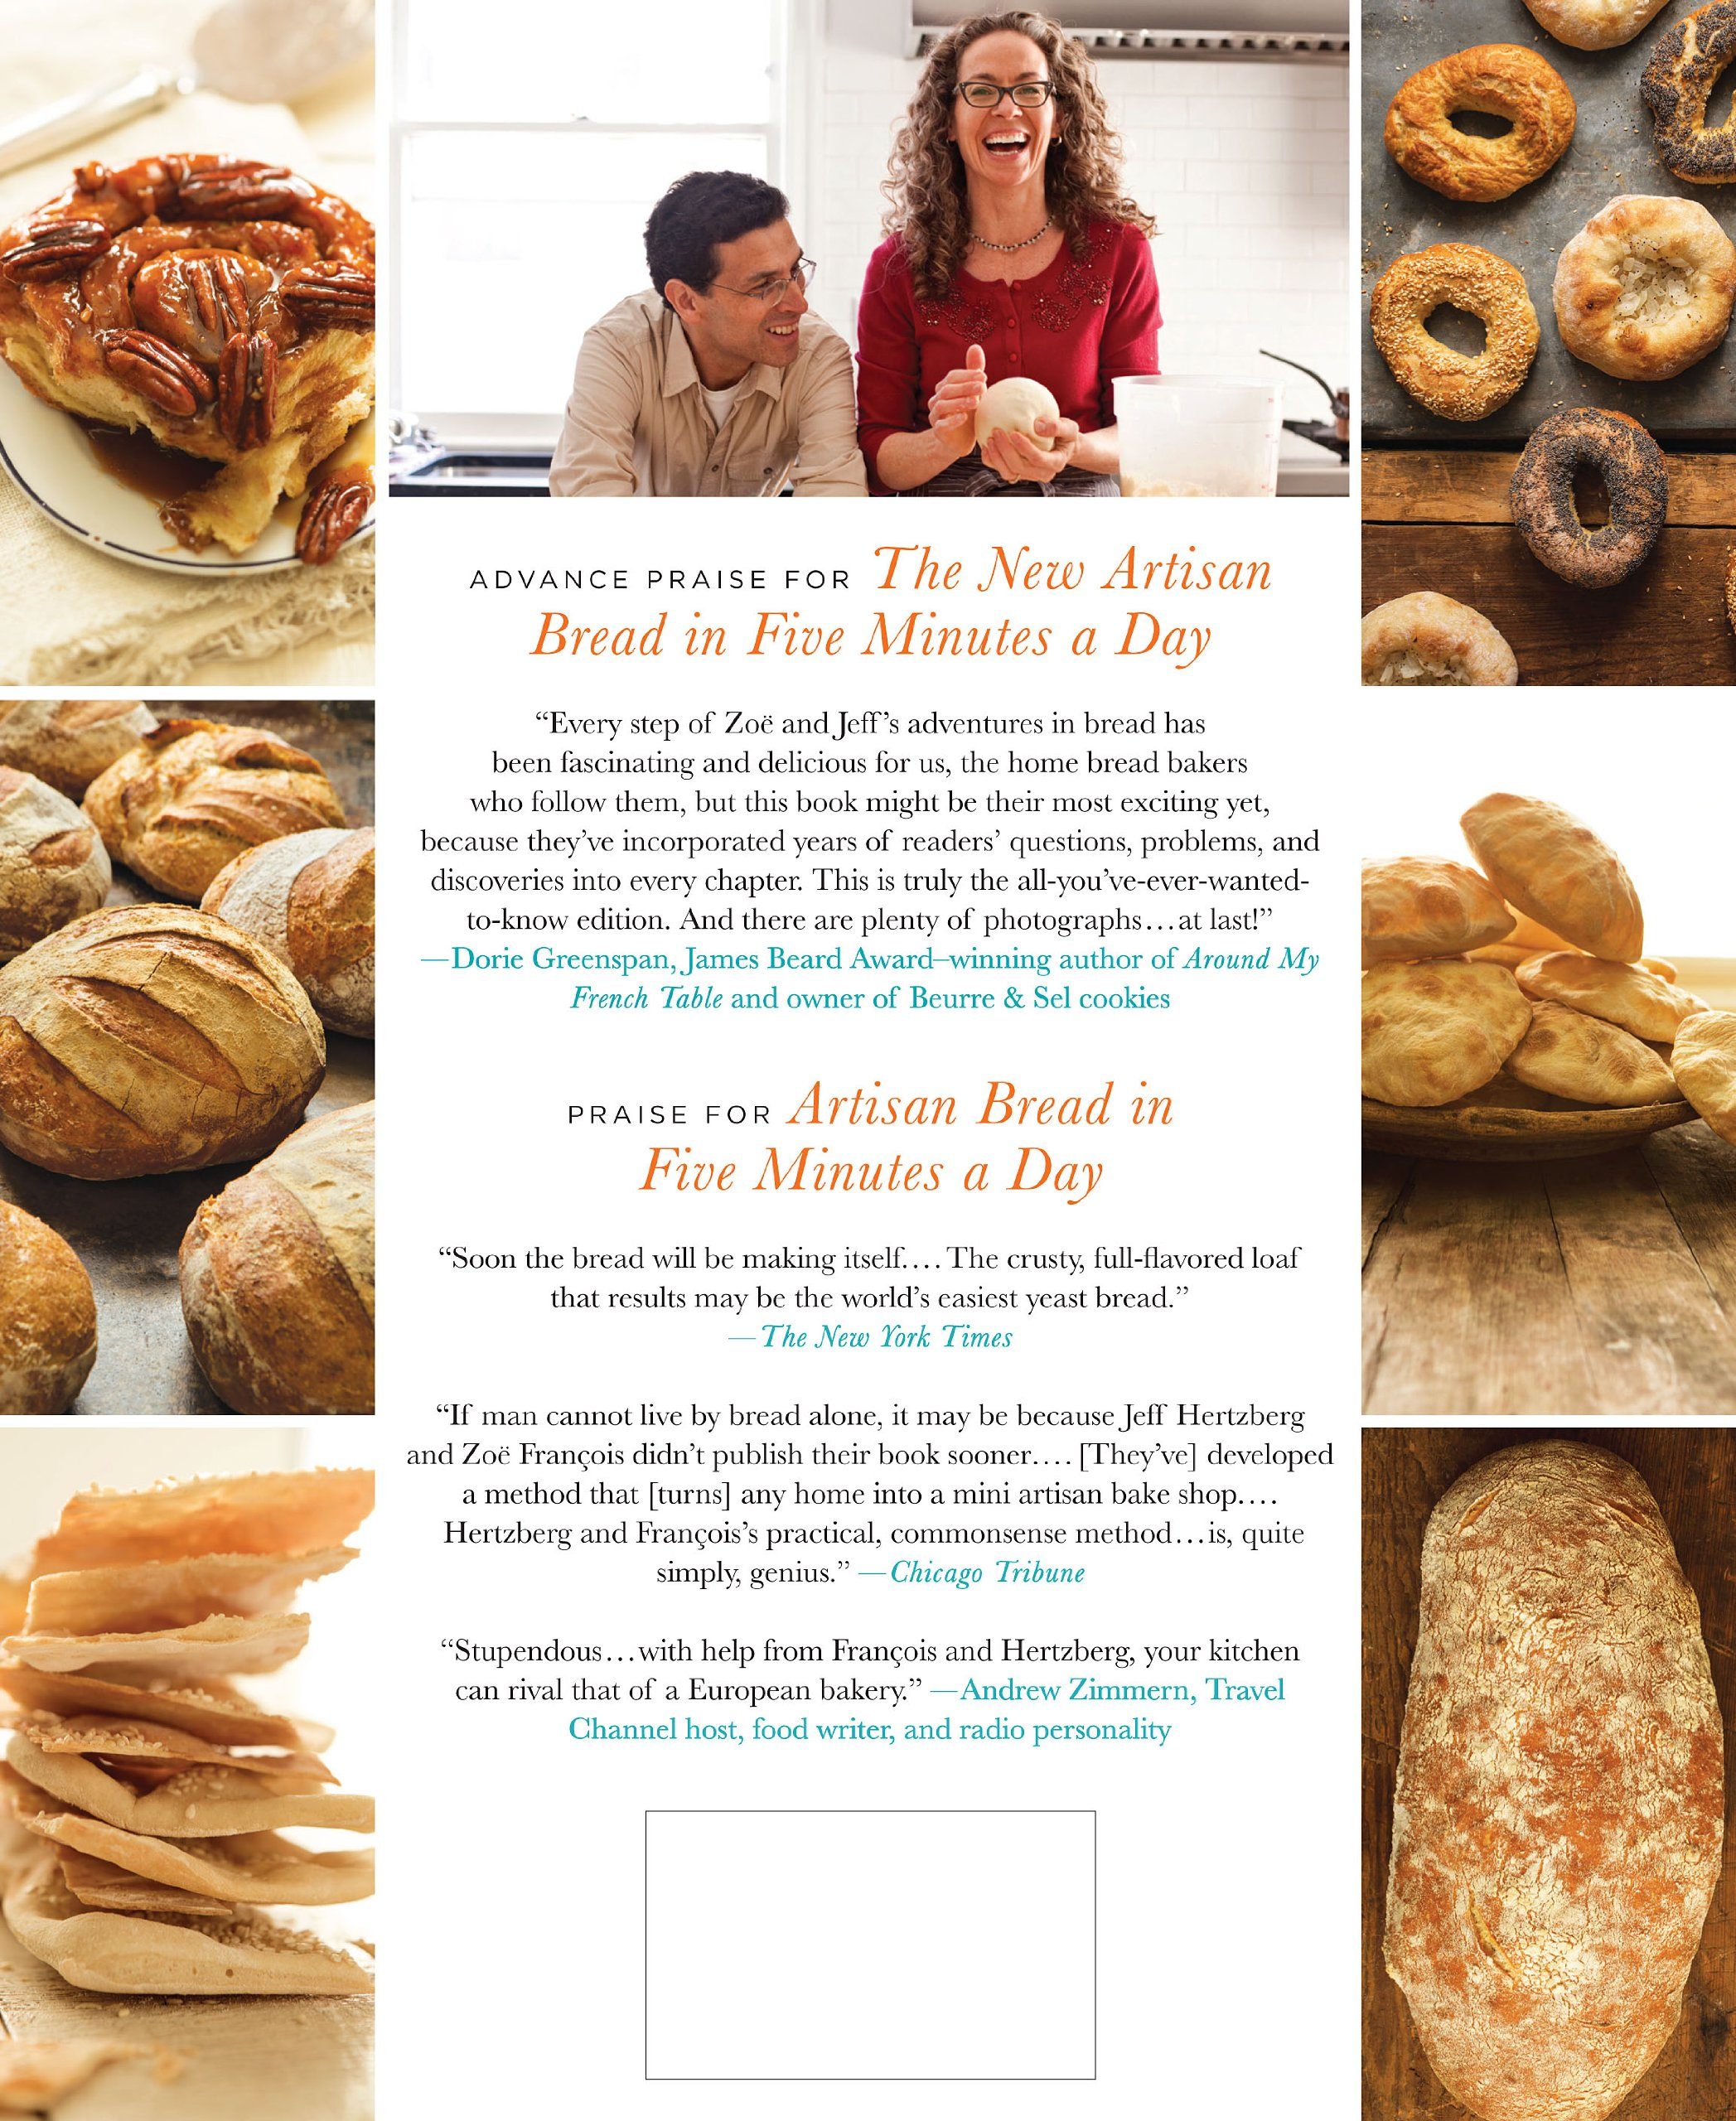 The New Artisan Bread In Five Minutes A Day Discovery That Revolutionizes Home Baking Jeff Hertzberg MD Zoe Francois Stephen Scott Gross